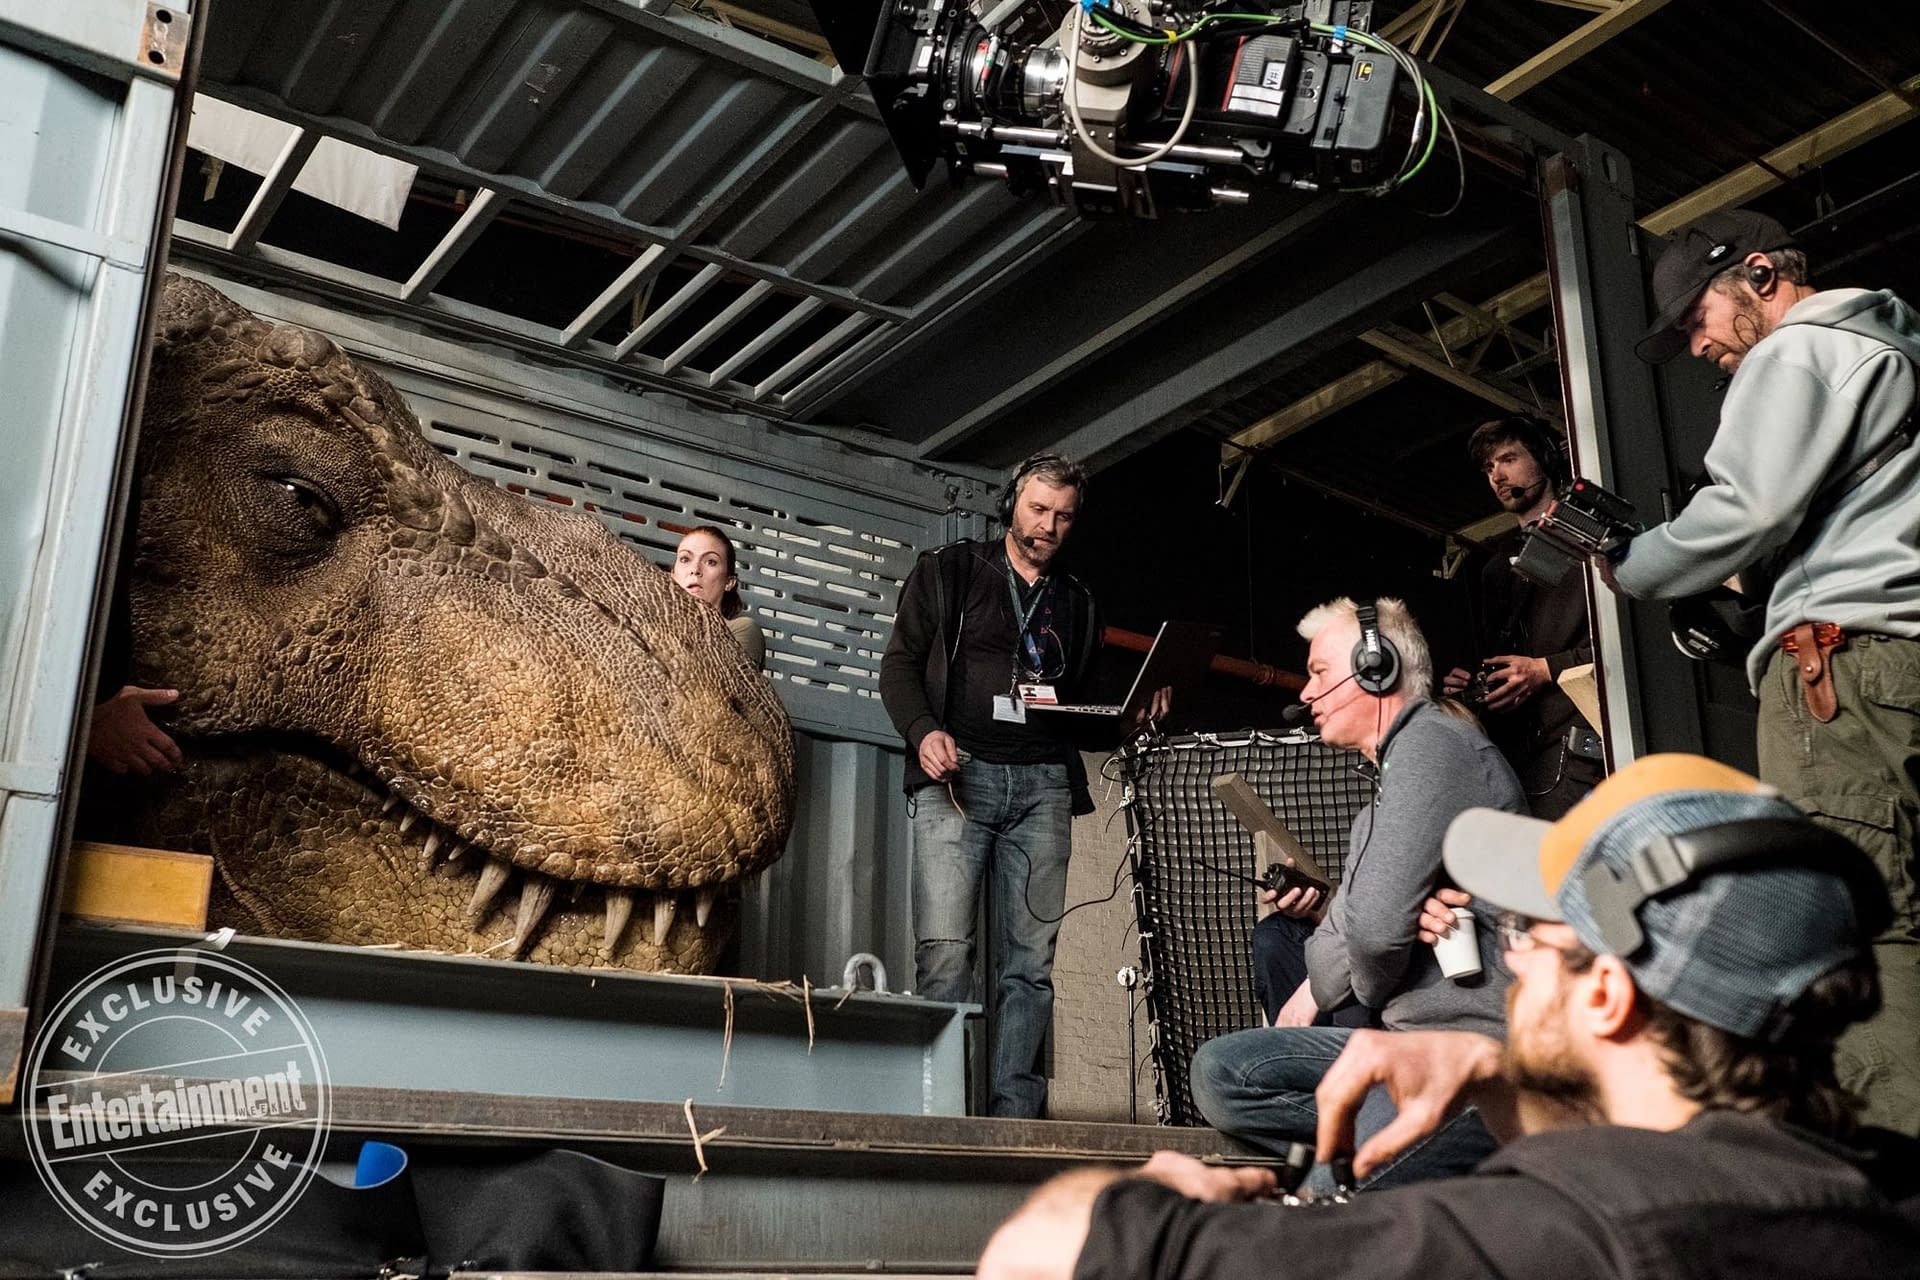 9 New Behind-the-Scenes Pictures from Jurassic World: Fallen Kingdom